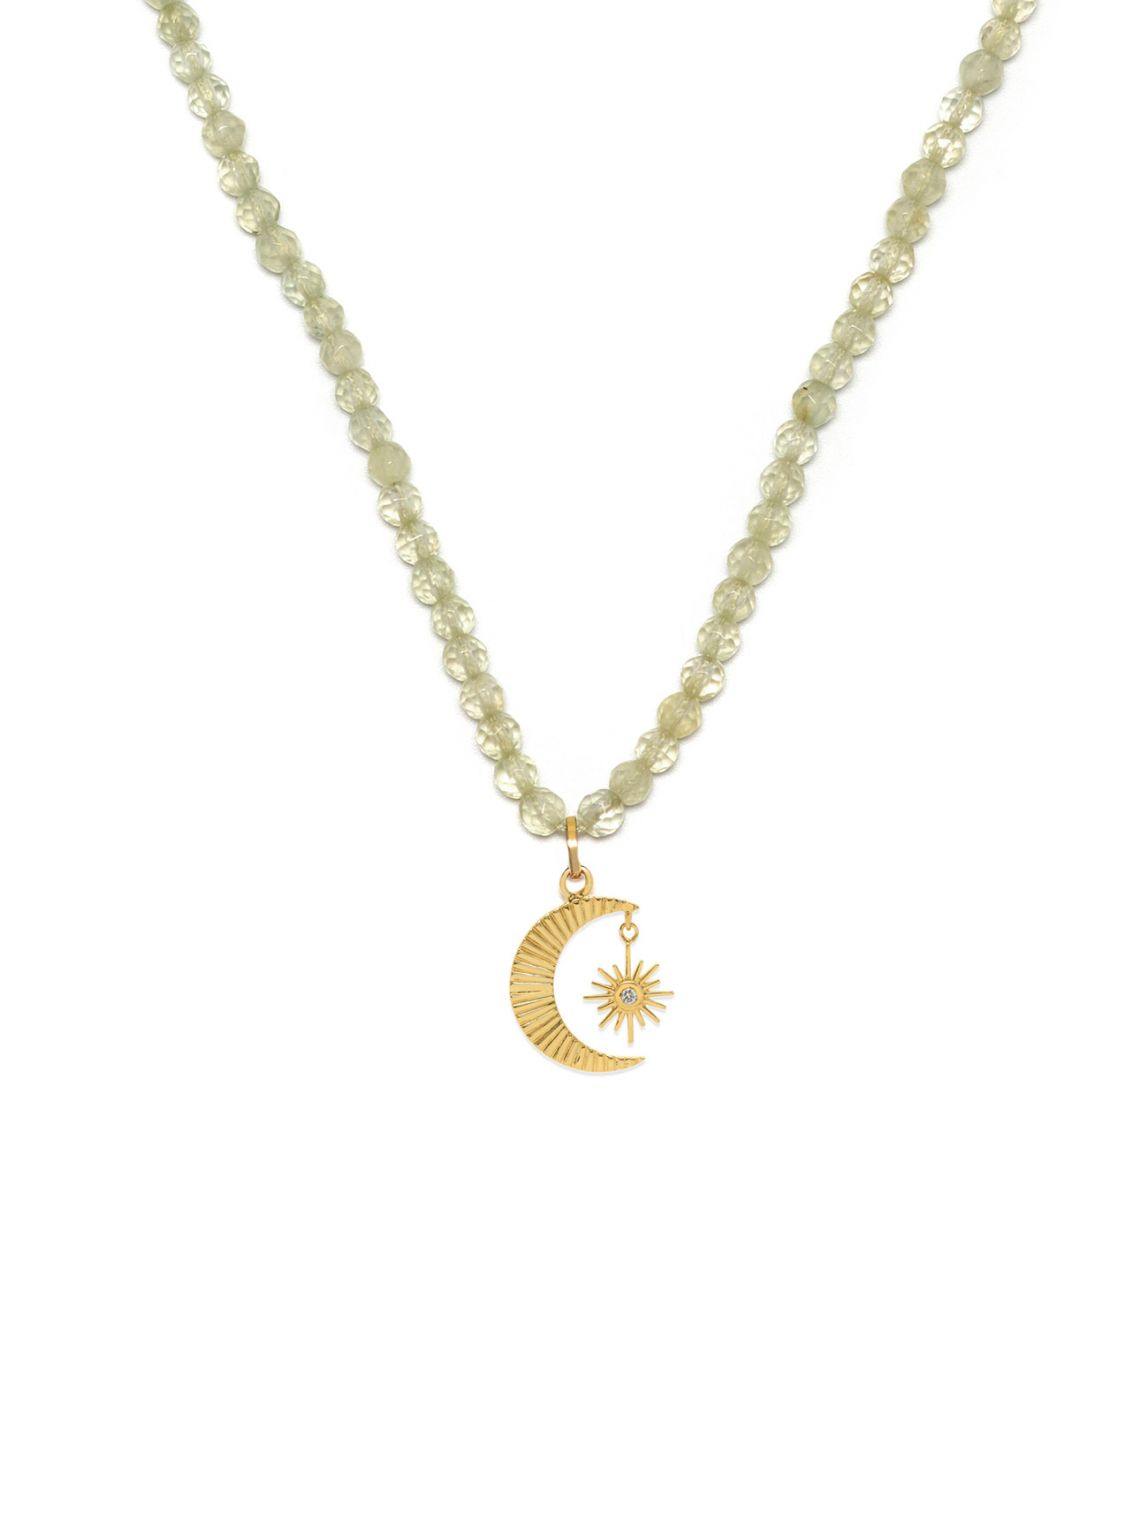 Celestial Star and Moon Beaded Necklace